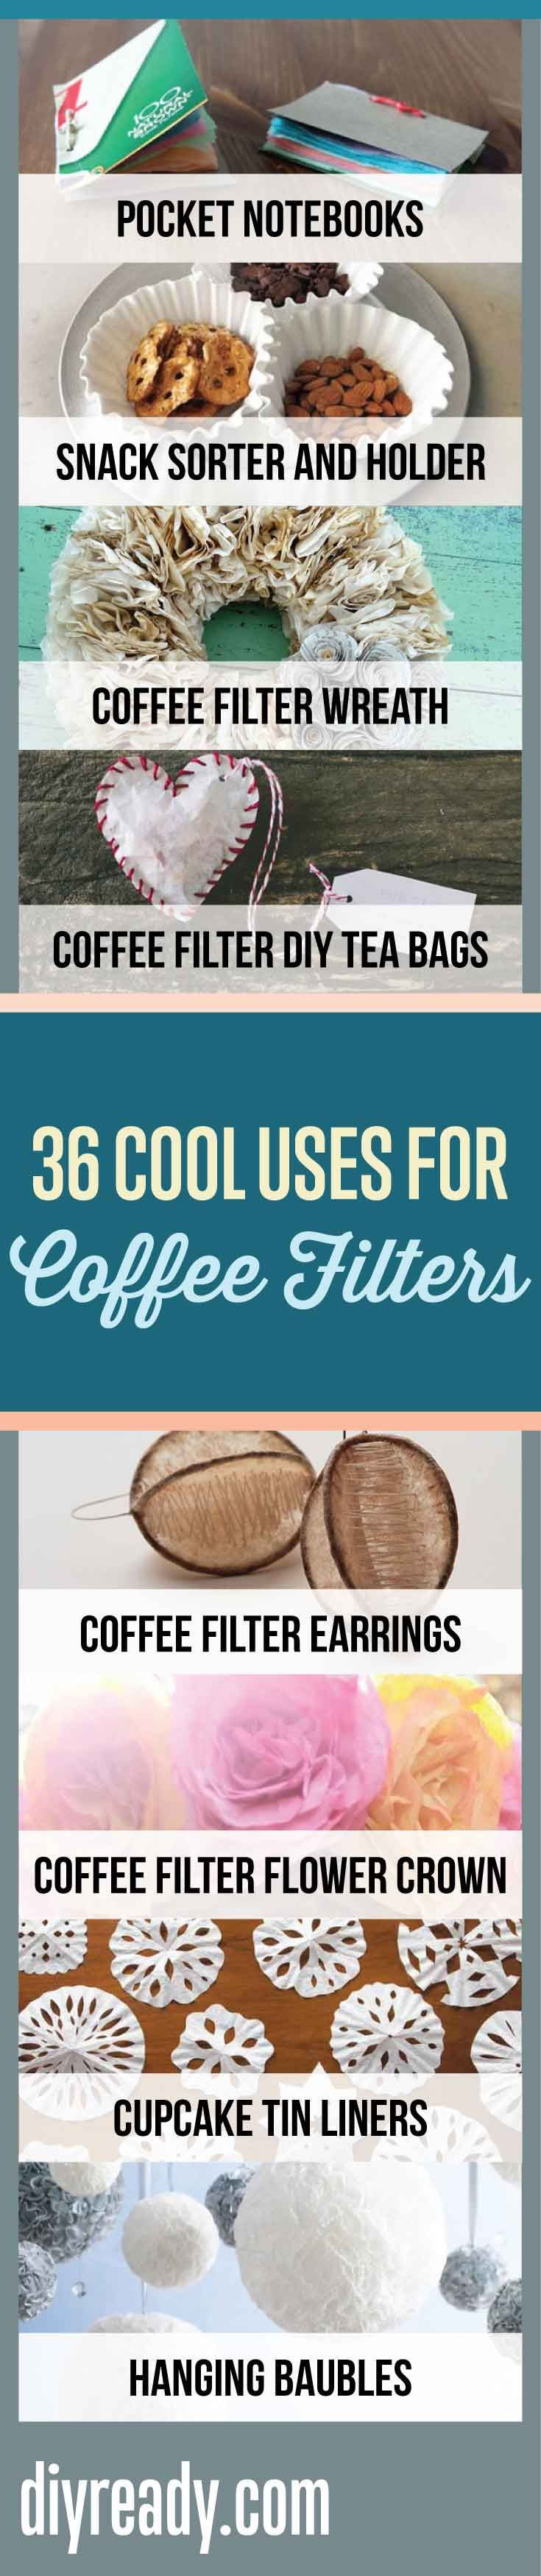 36 Cool Uses For Coffee Filters That Will Surprise You | Creative Ways To Upcycle Coffee Filters By DIY Ready. http://diyready.com/uses-for-coffee-filters-diy-projects-and-ideas/